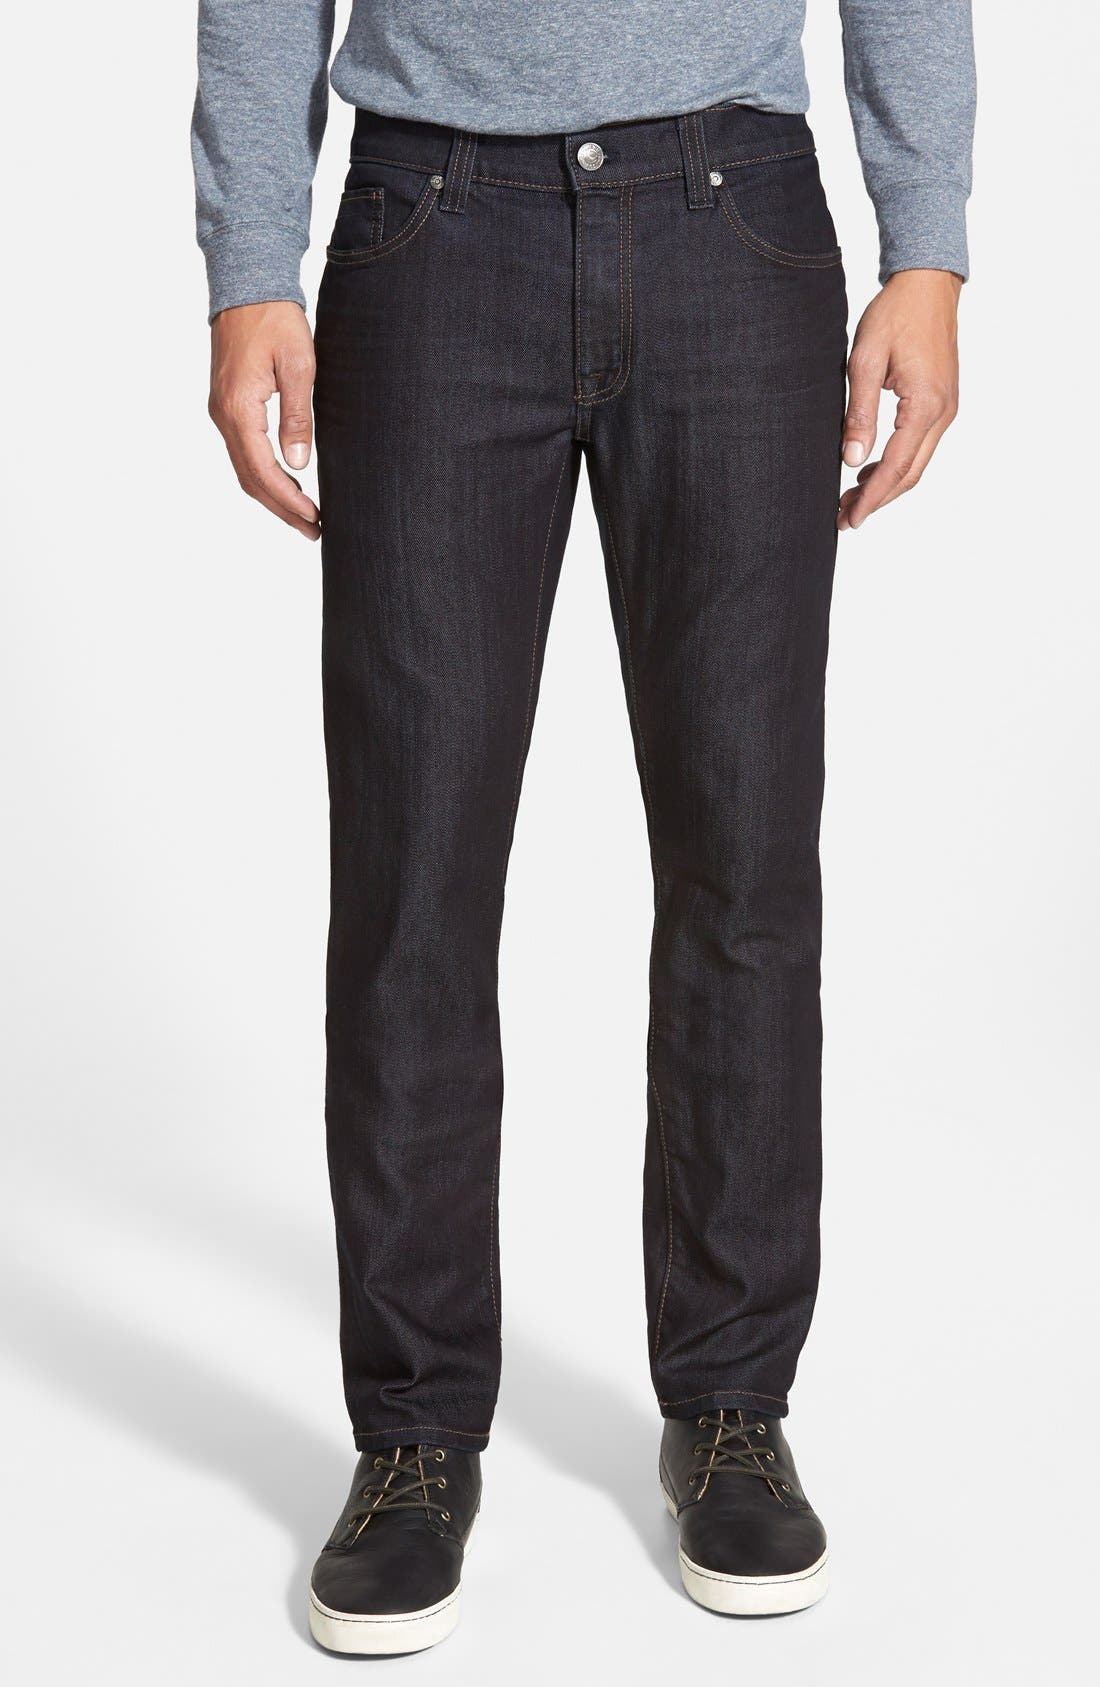 FIDELITY DENIM Torino Slim Fit Jeans